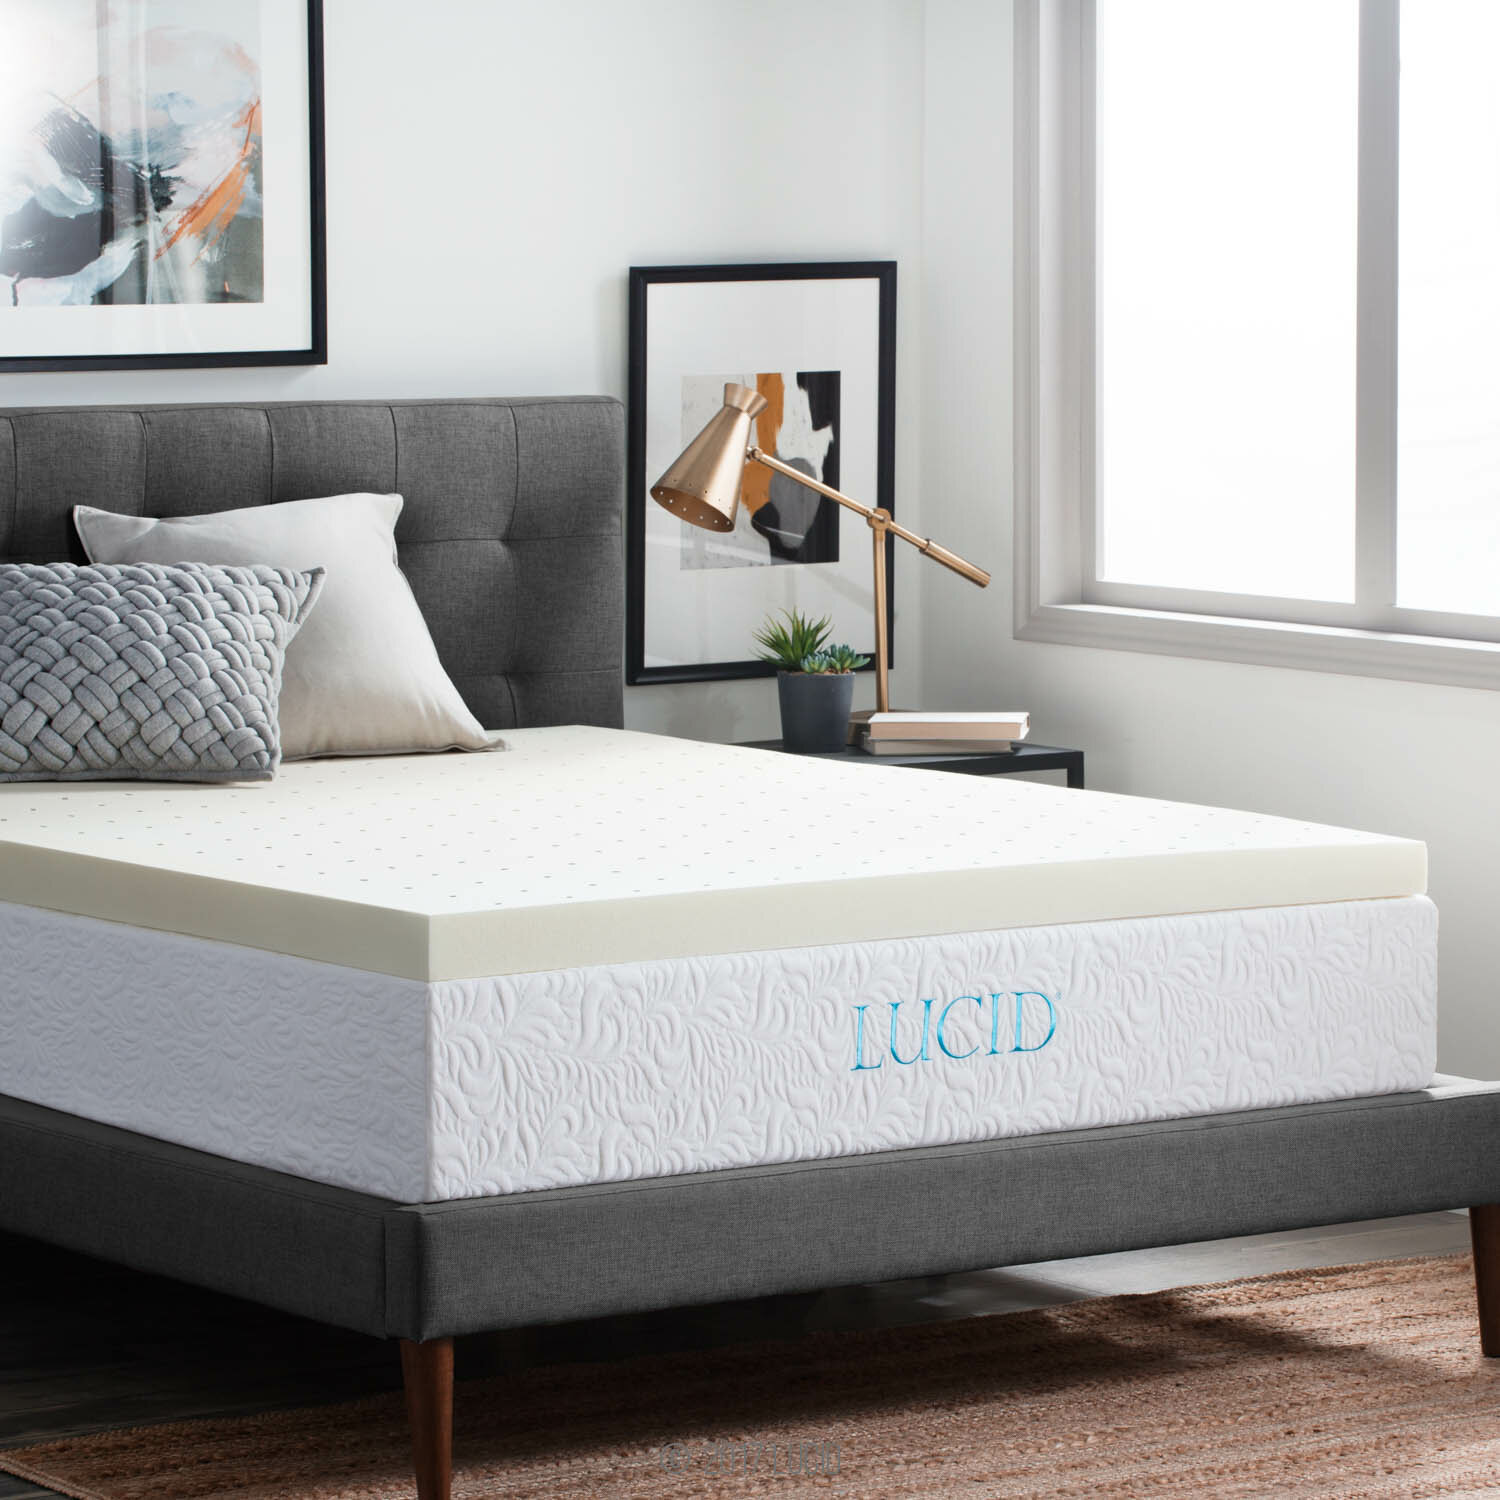 inch loft overstock pad from beautyrest today memory topper shipping comforpedic product mattress bath foam bedding free